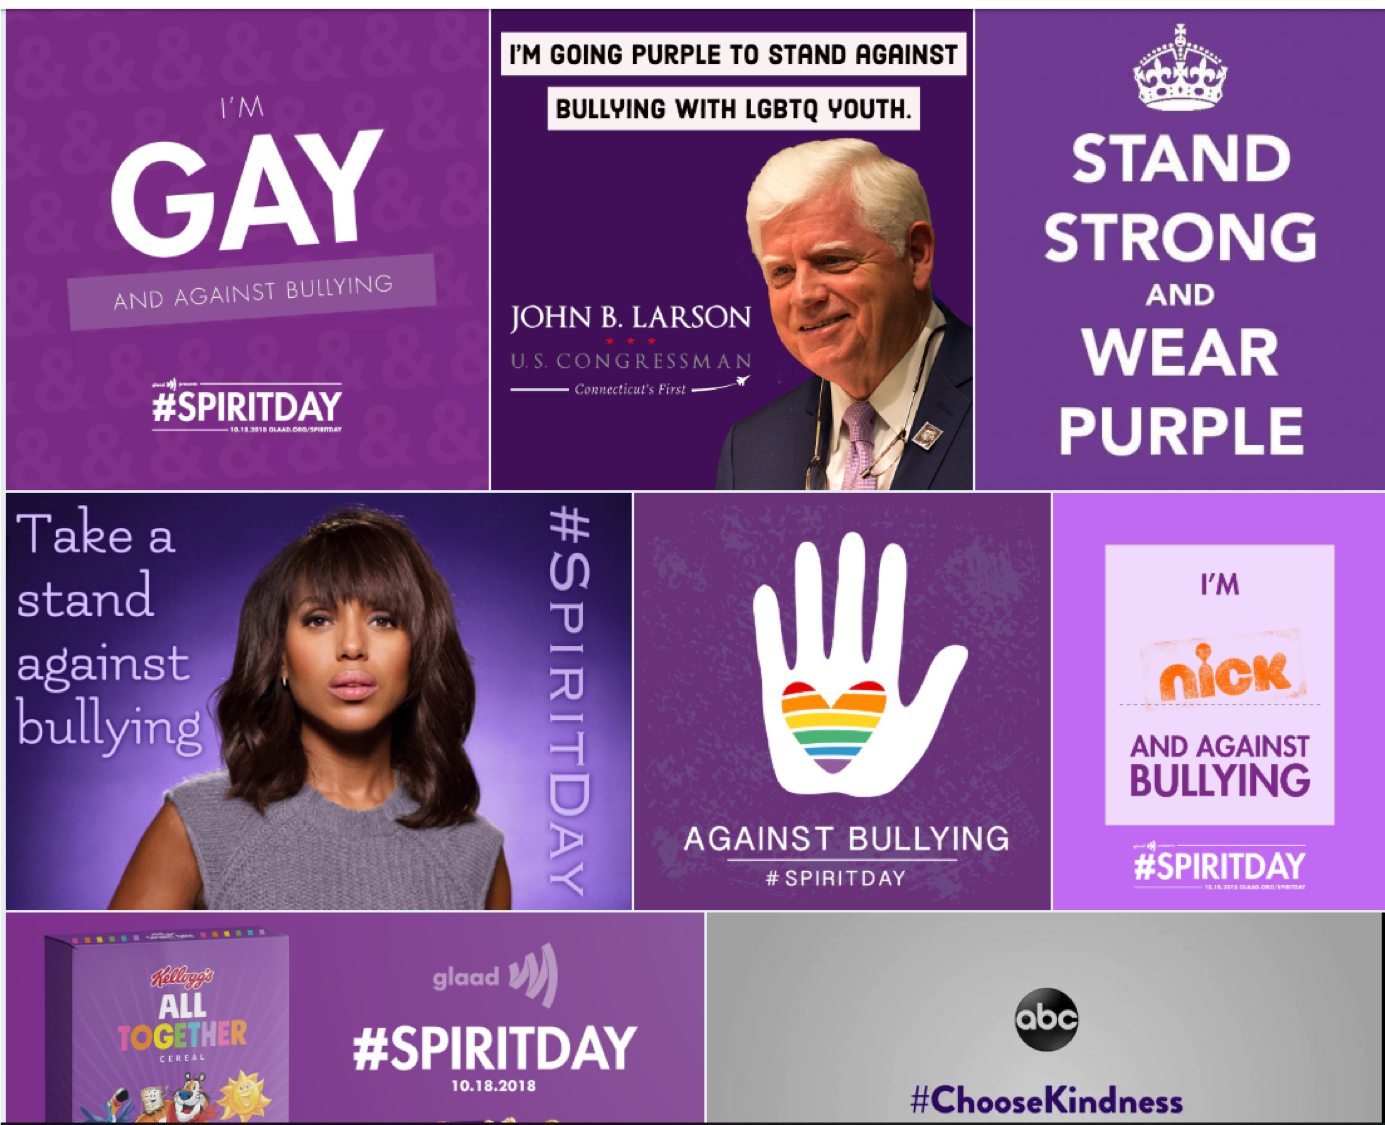 #spiritday images on Twitter provide great inspiration for what will sell on a t-shirt